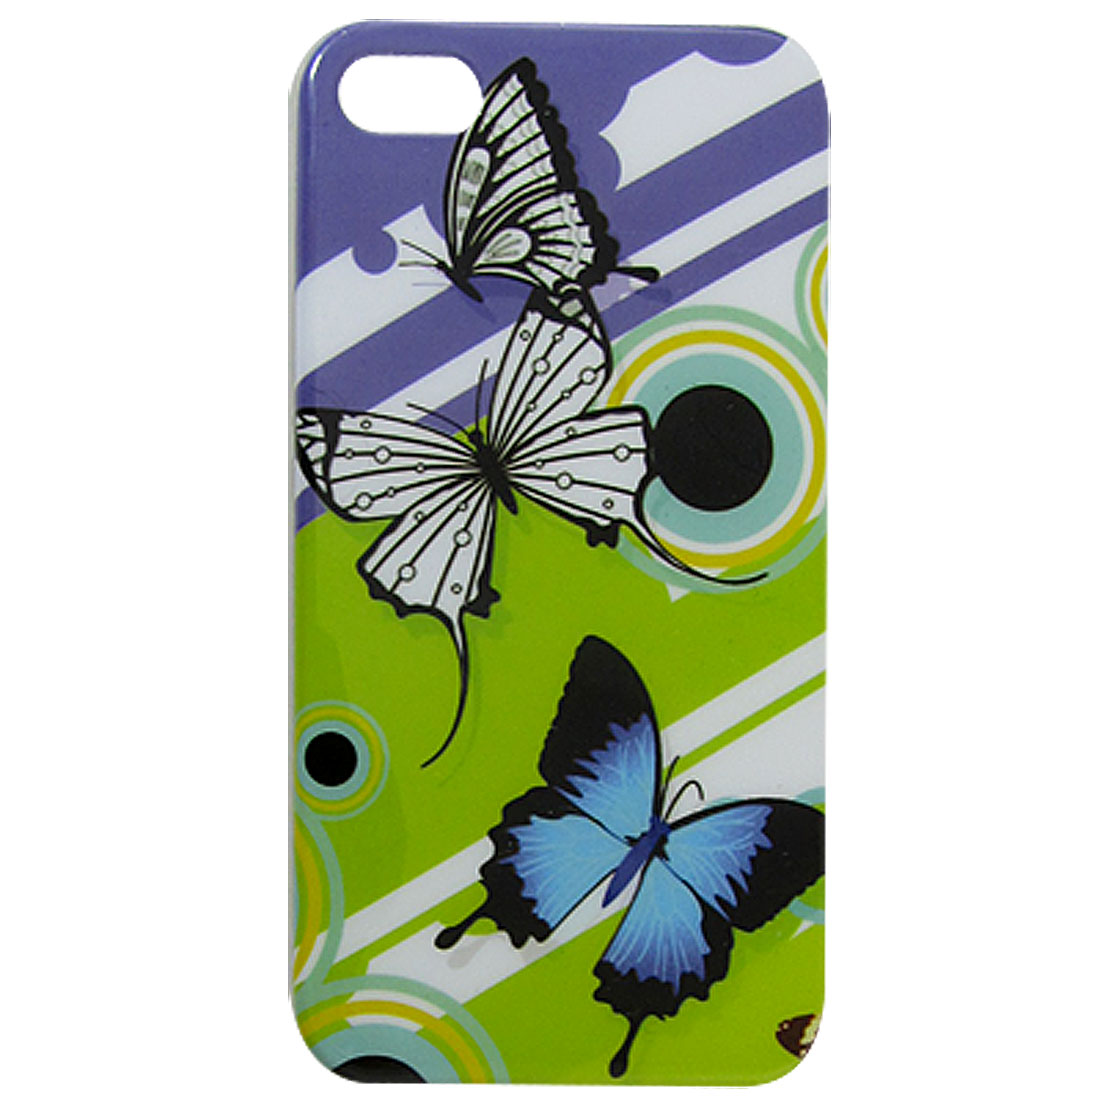 Green Purple IMD Hard Plastic Butterflies Printed Back Case for iPhone 4 4G